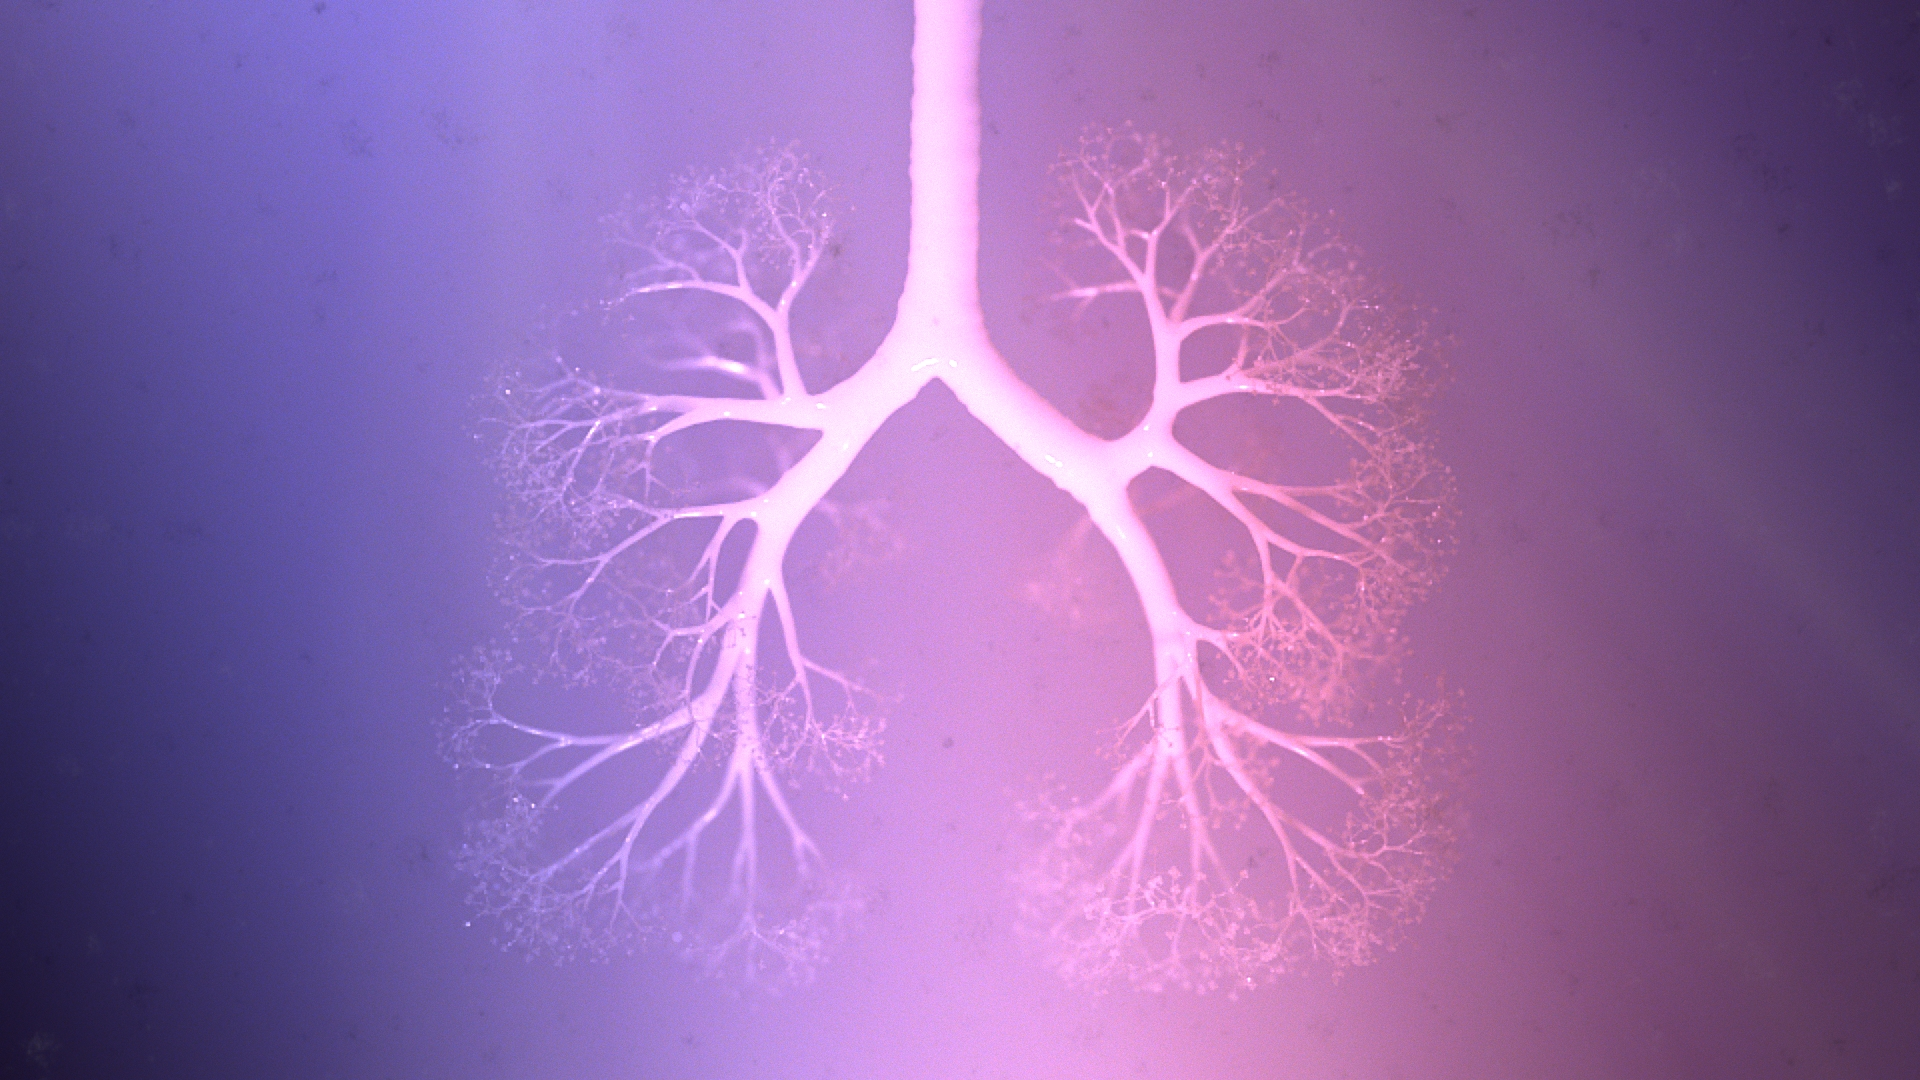 lung_v004_render_pinkFog2-1